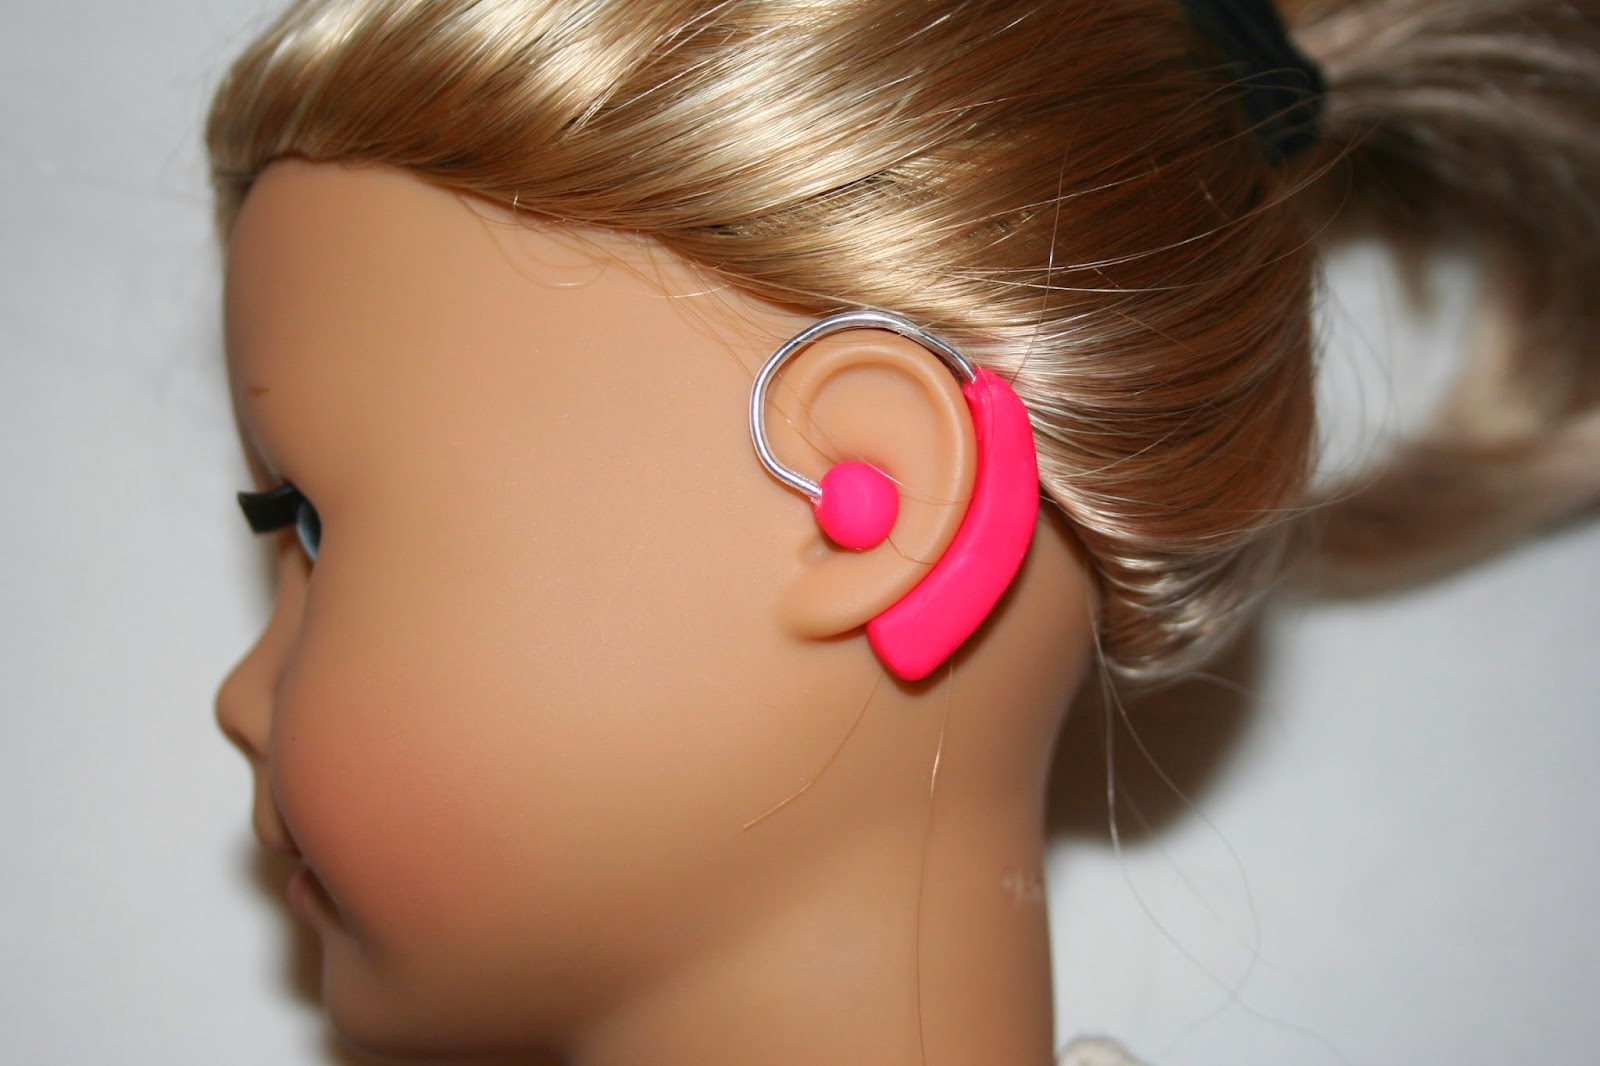 http://myagdollcraft.blogspot.com/2014/01/hearing-aid-for-american-girl-doll.html